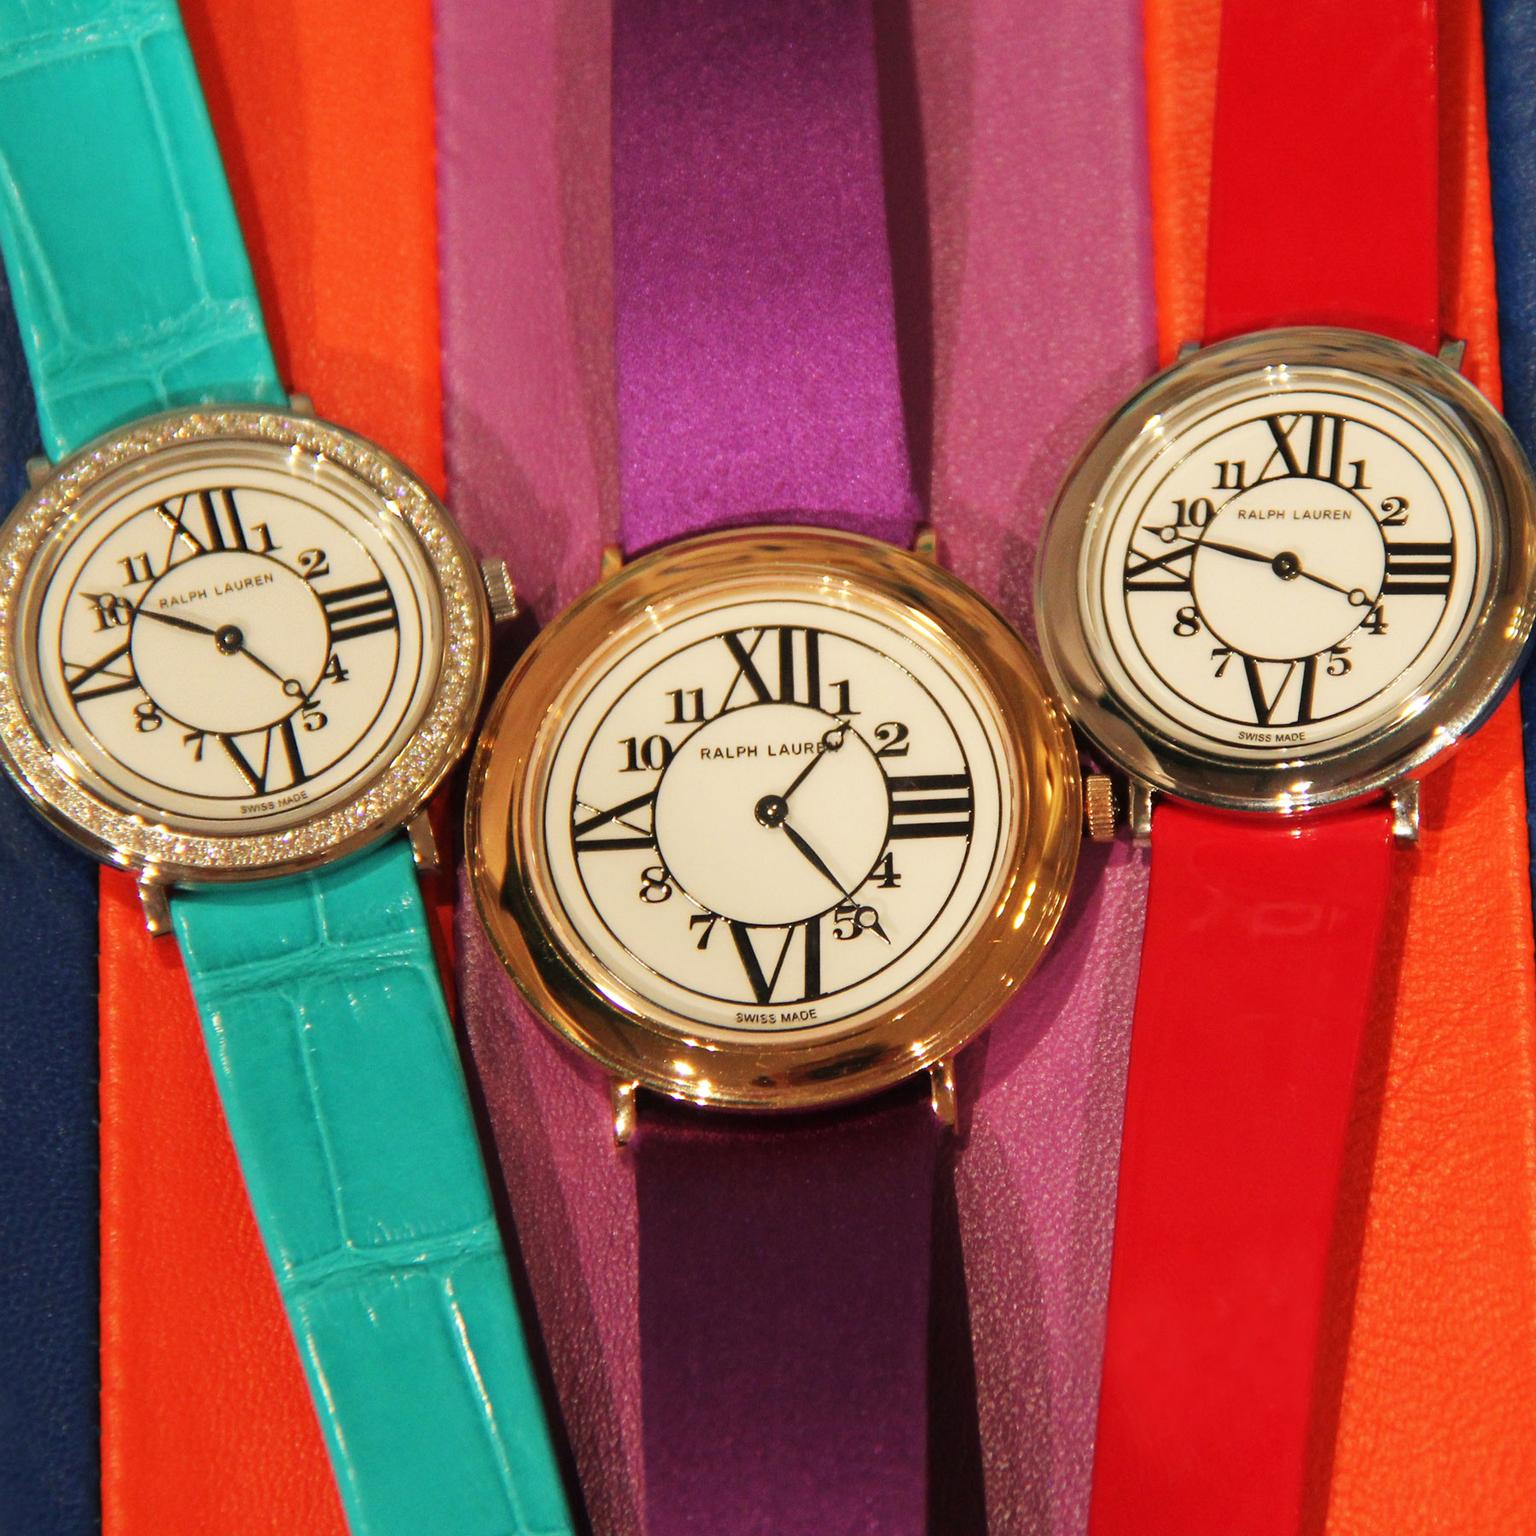 Ralph Lauren RL888 watches with interchangeable straps